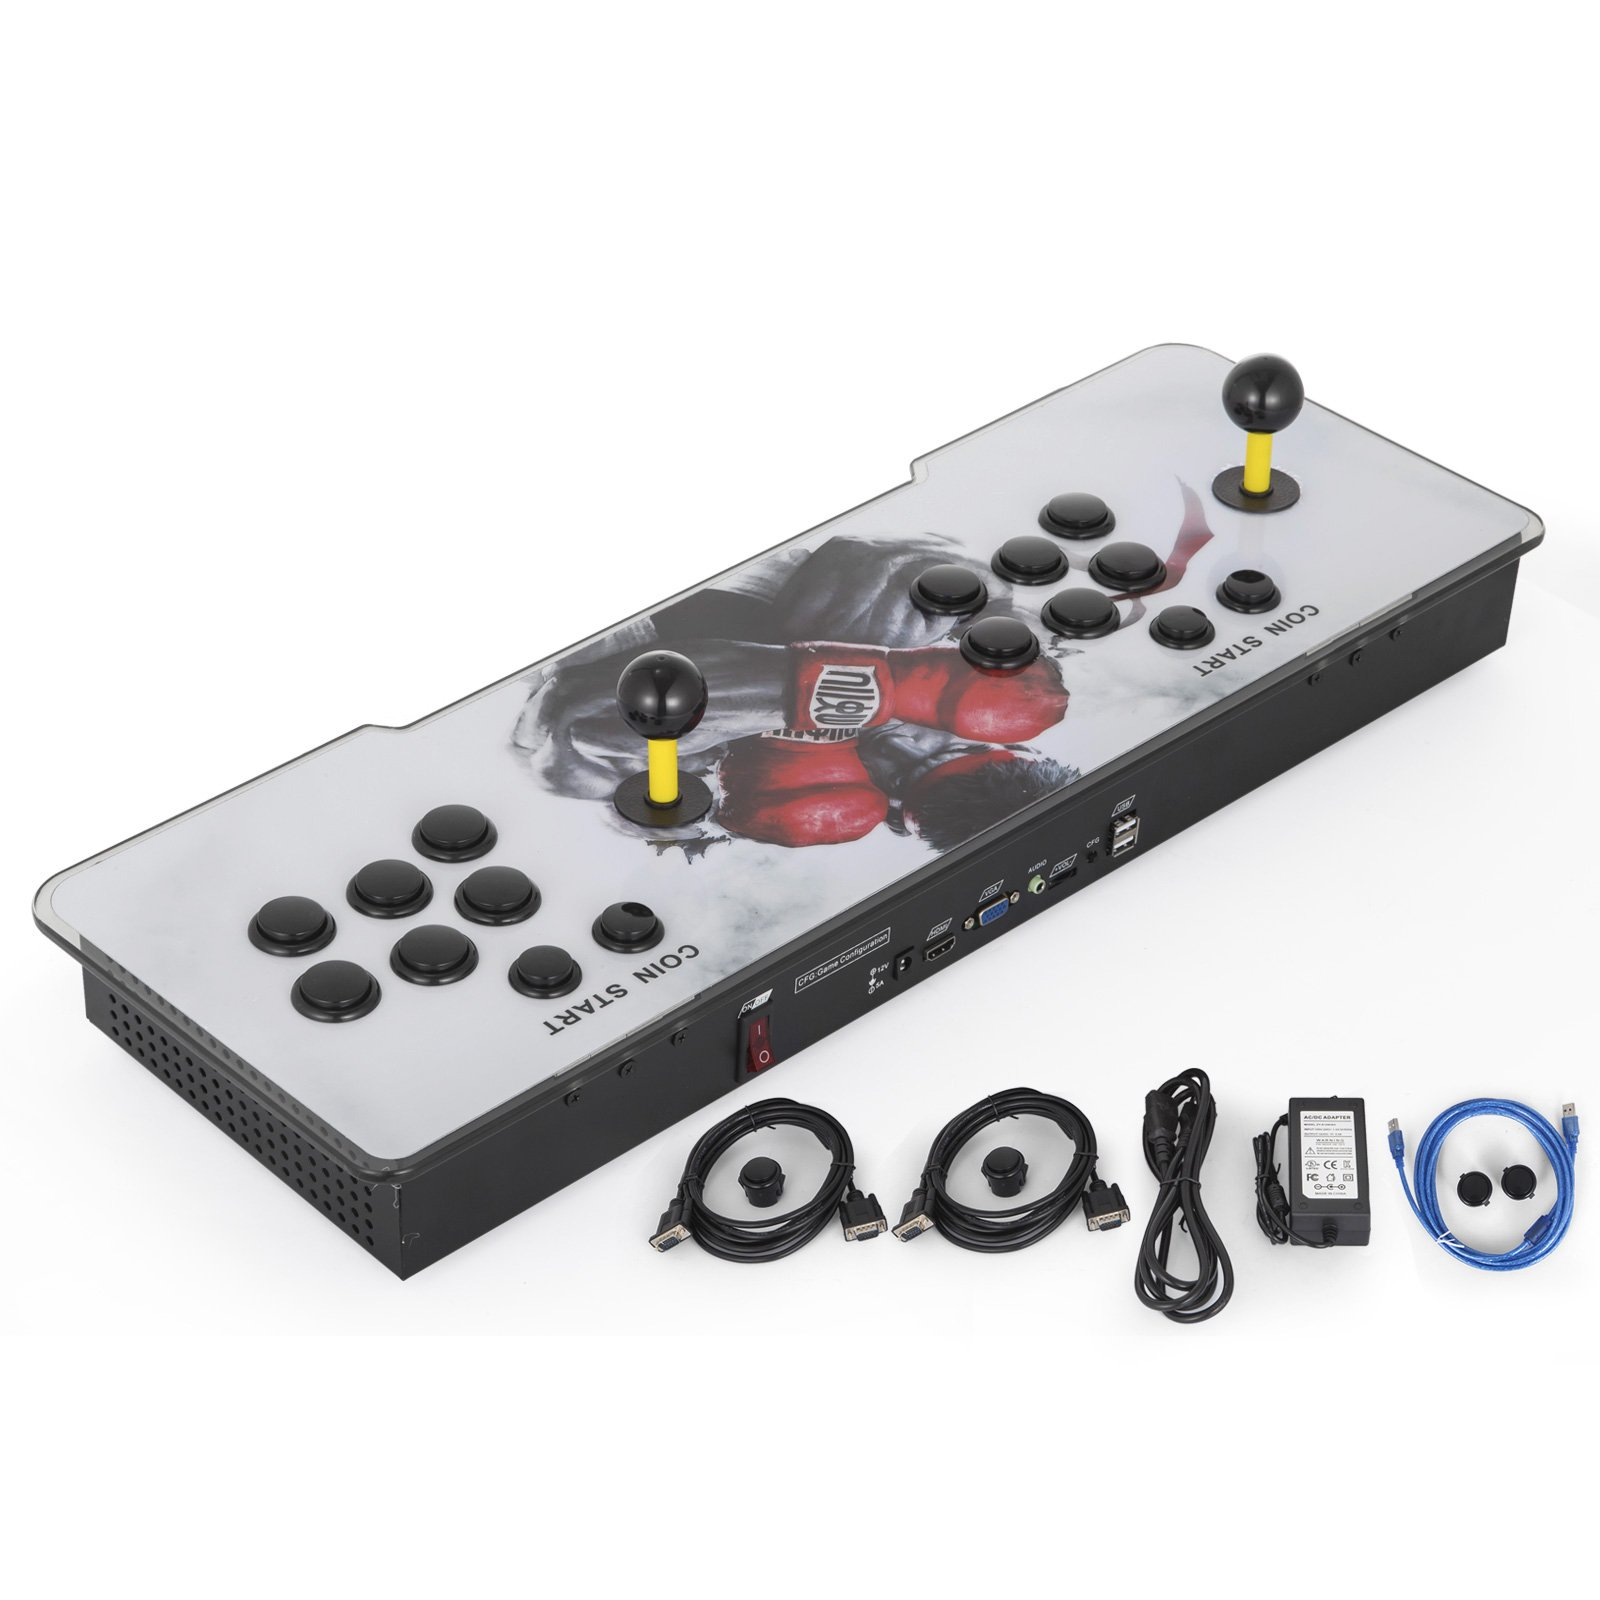 Happybuy Video Game Console, Arcade Machine Over 1500 Latest Classic Games, 2 Players Pandora's Box 9S Multiplayer Home Arcade Console Games All in 1 Non-Jamma PCB Double Stick Newest Design Power HDM by Happybuy (Image #3)